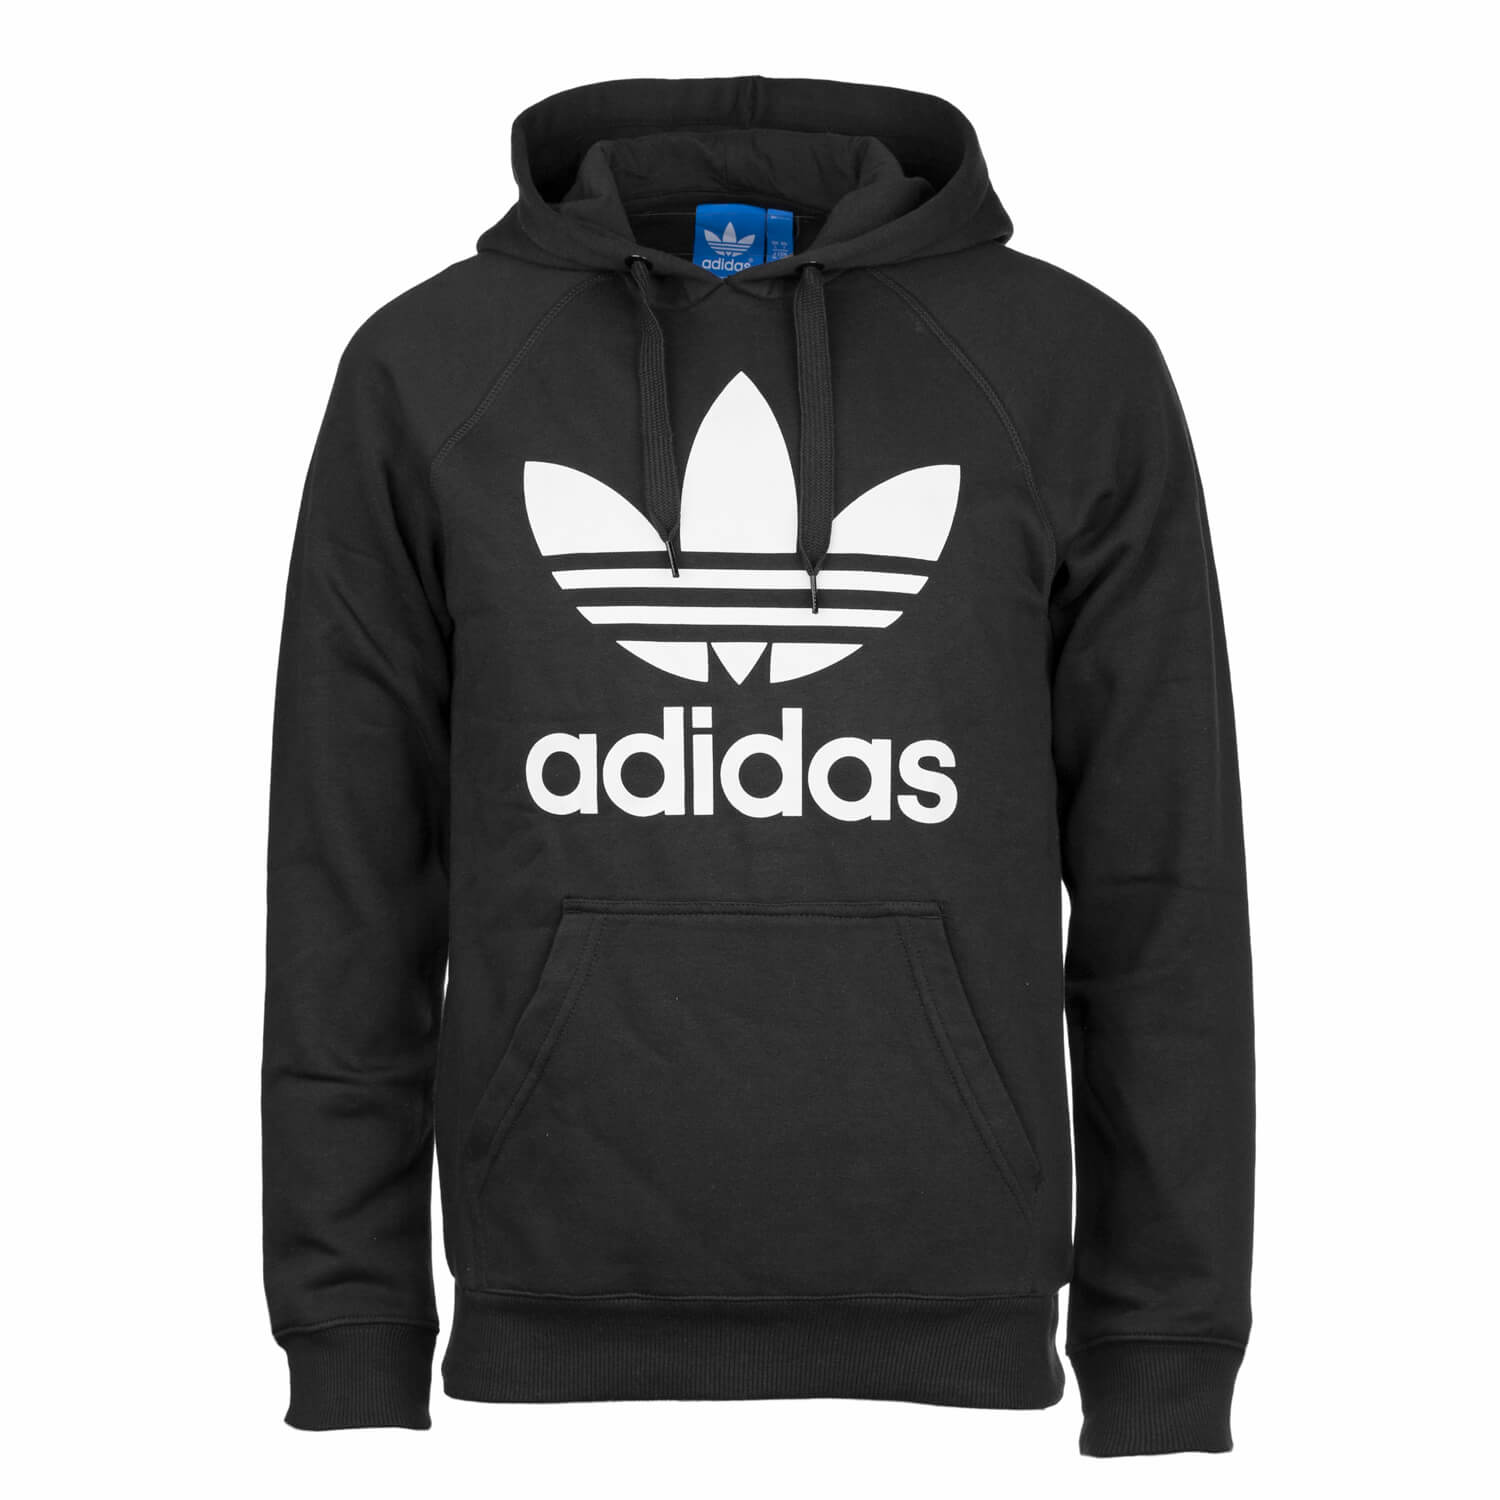 adidas originals trefoil hoody schwarz wei herren kapuzenpullover mit adidas logo drop. Black Bedroom Furniture Sets. Home Design Ideas